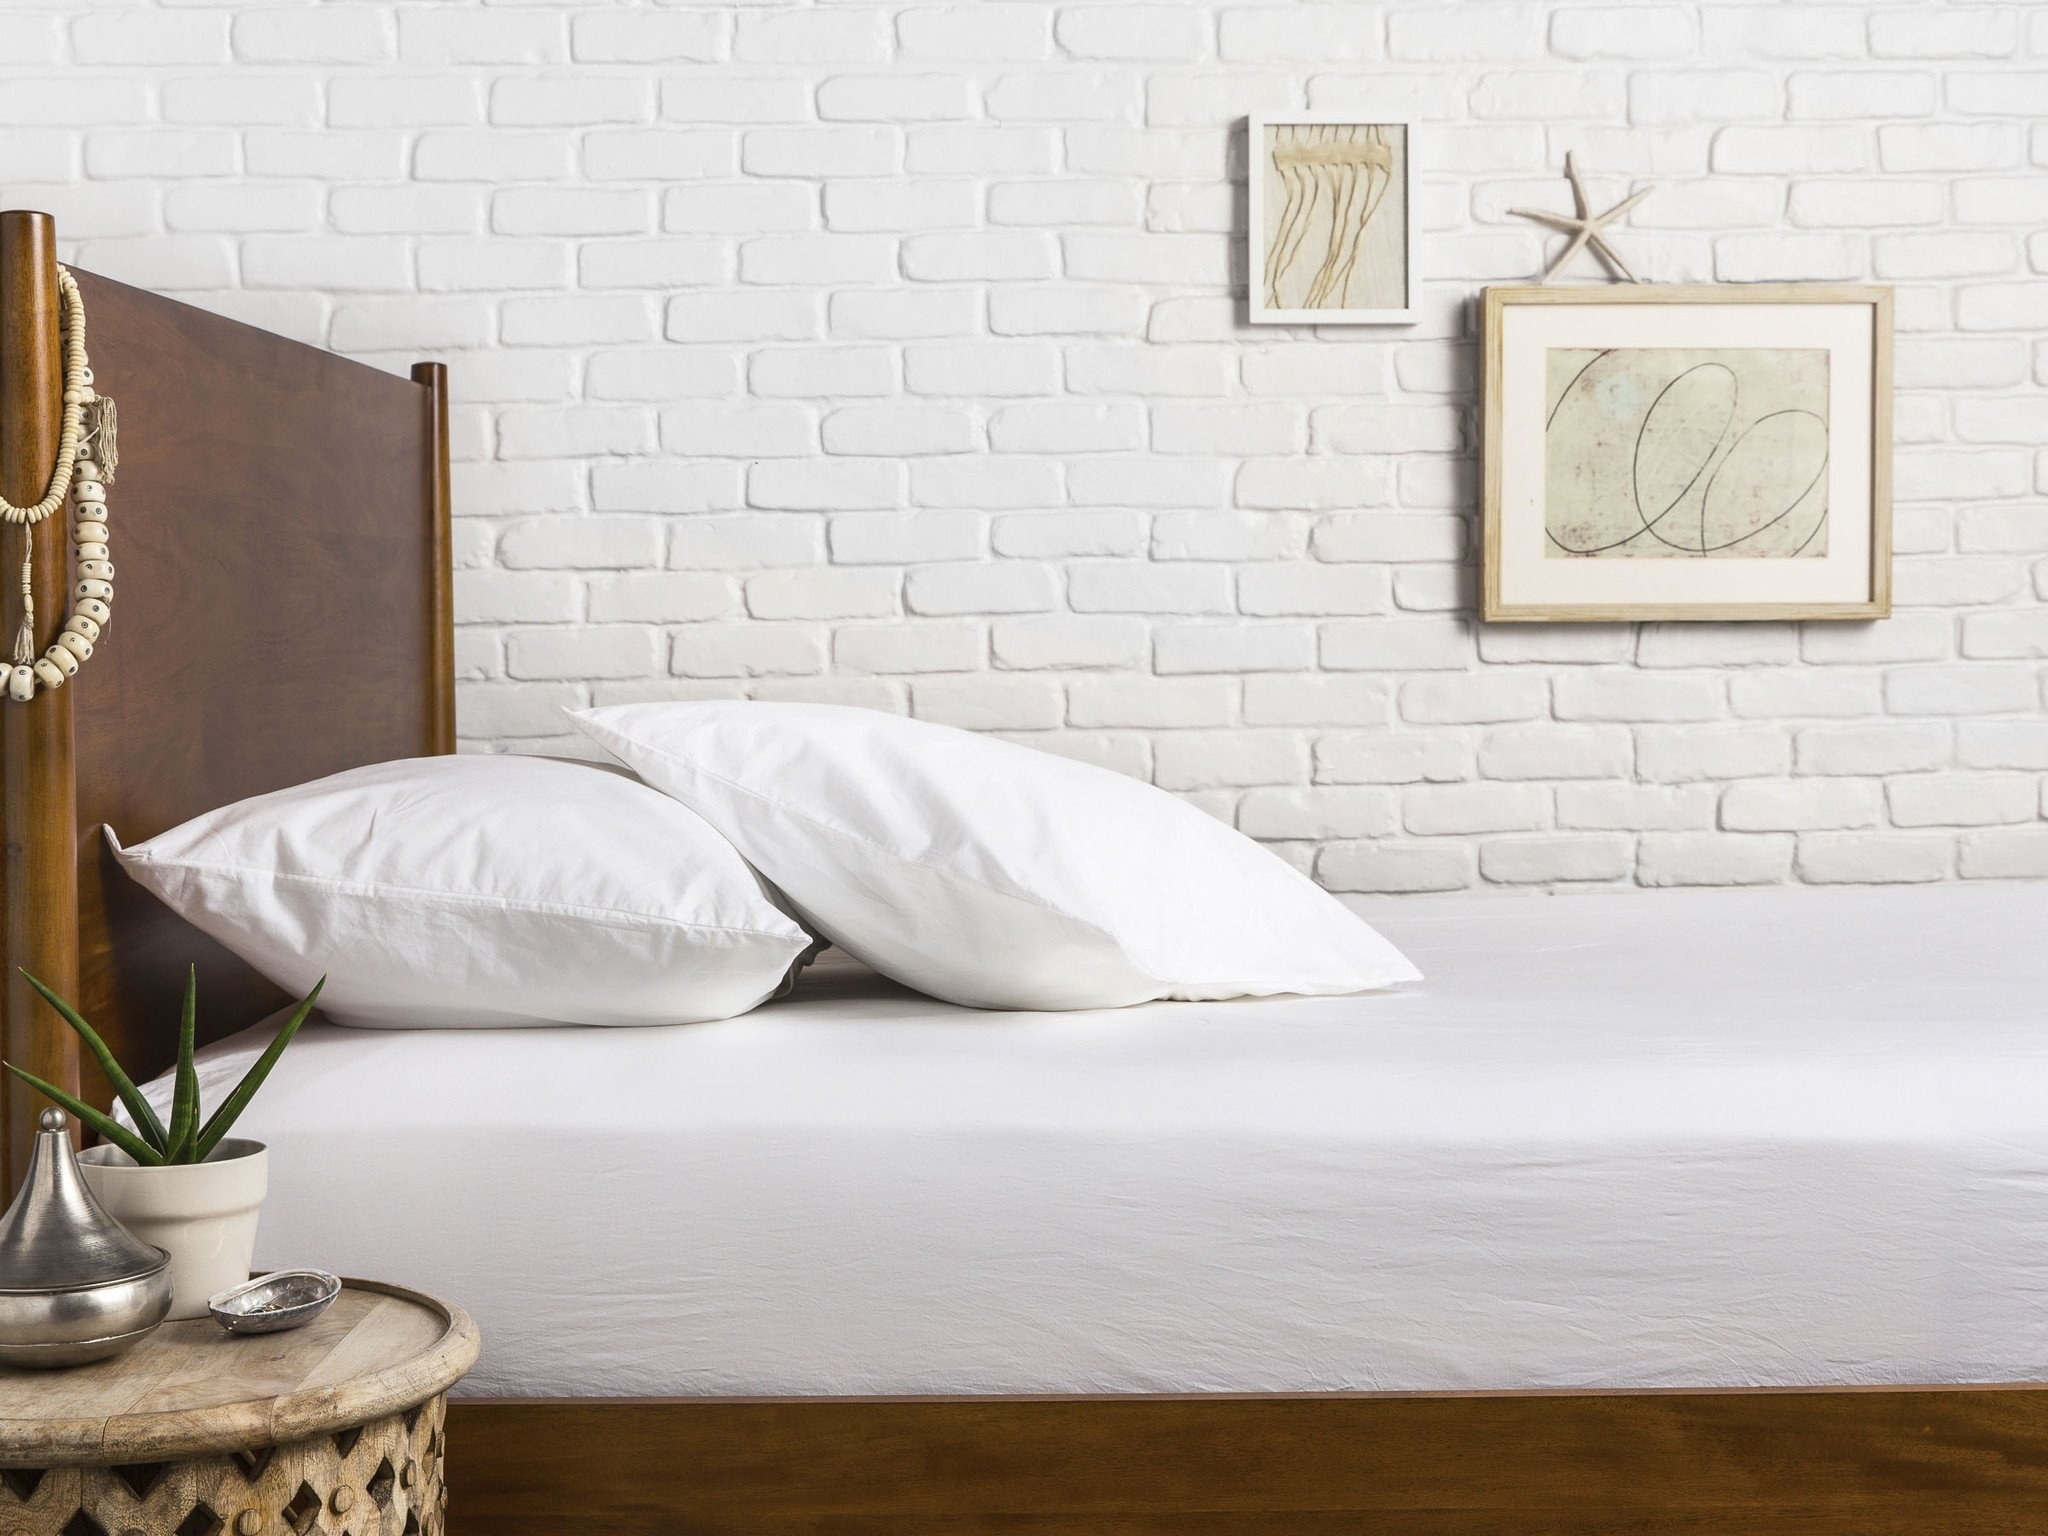 a bed with white sheets and white pillowcases on it